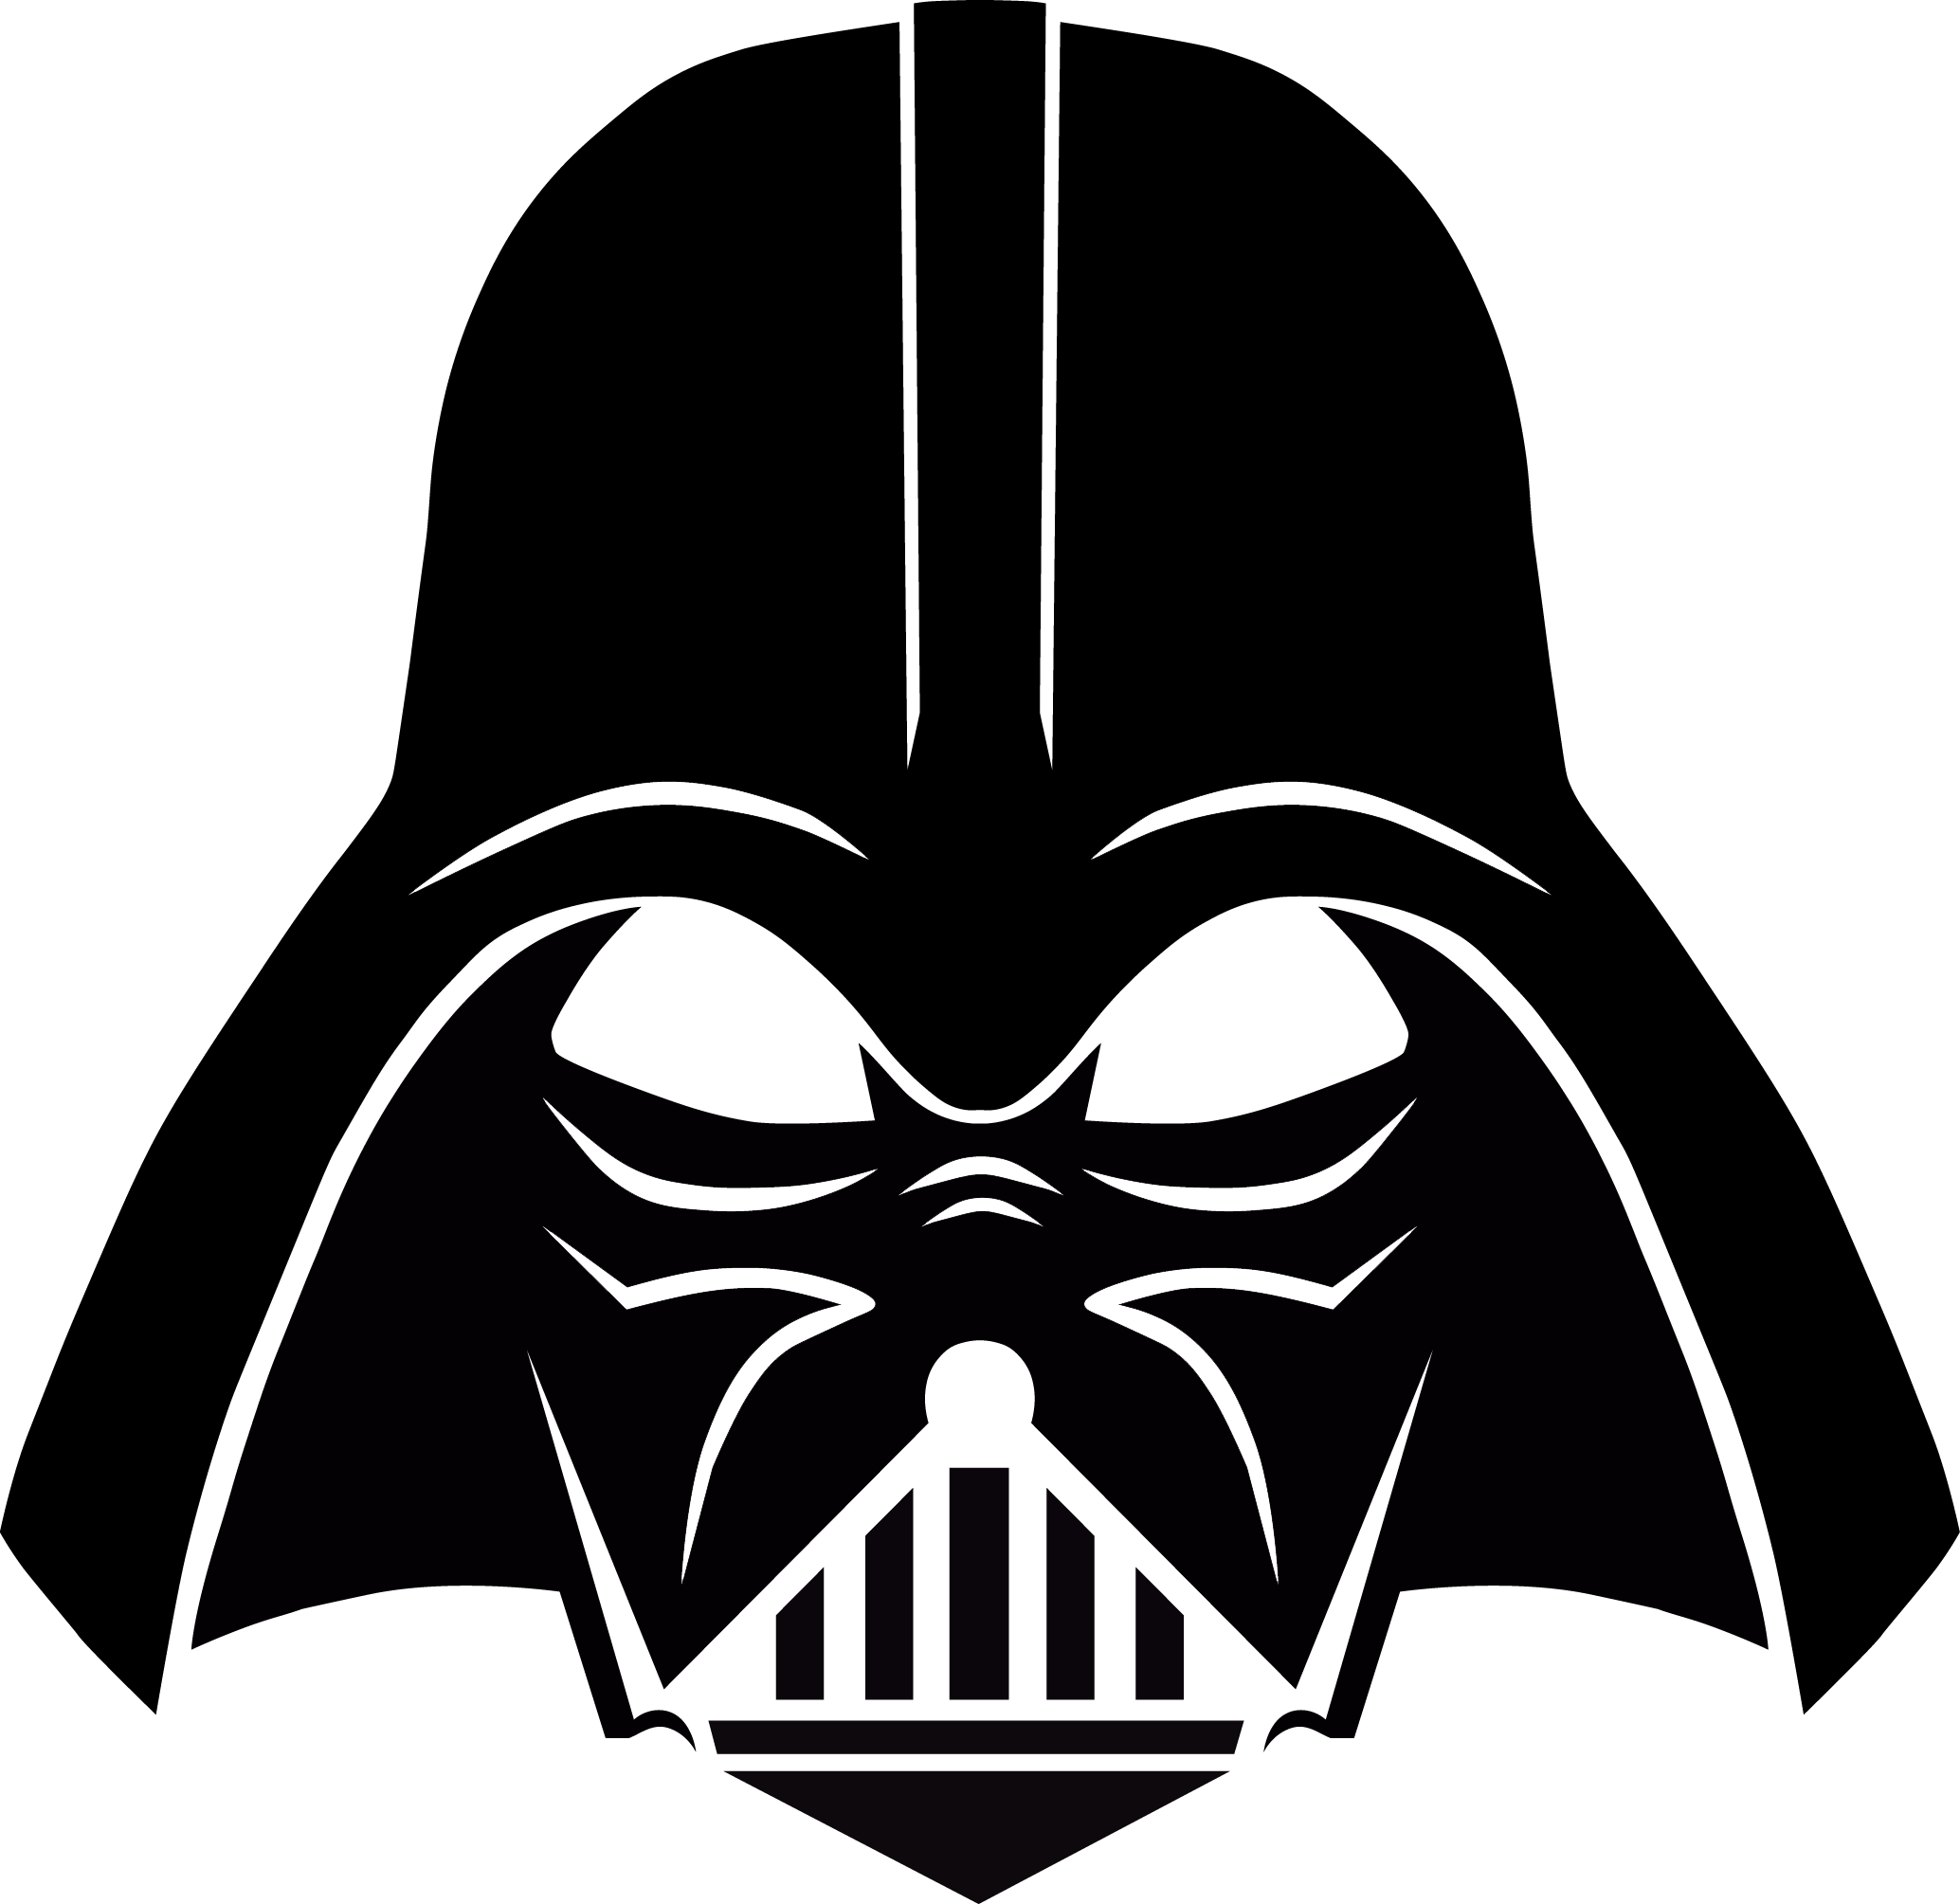 Star wars helmet clipart picture black and white download Darth Vader PNG Image - PurePNG | Free transparent CC0 PNG Image Library picture black and white download